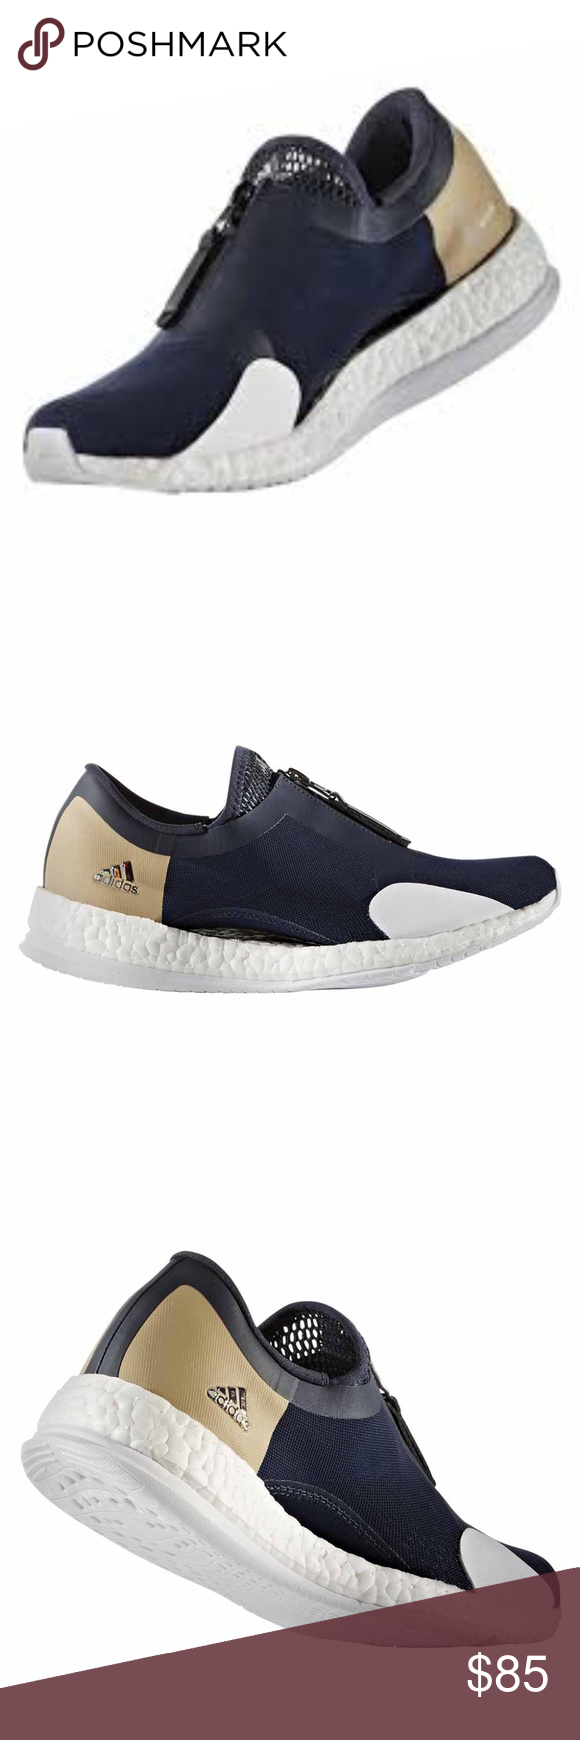 8965c22b2 TODAY ONLY- adidas Womens Pure Boost X Tr Zip